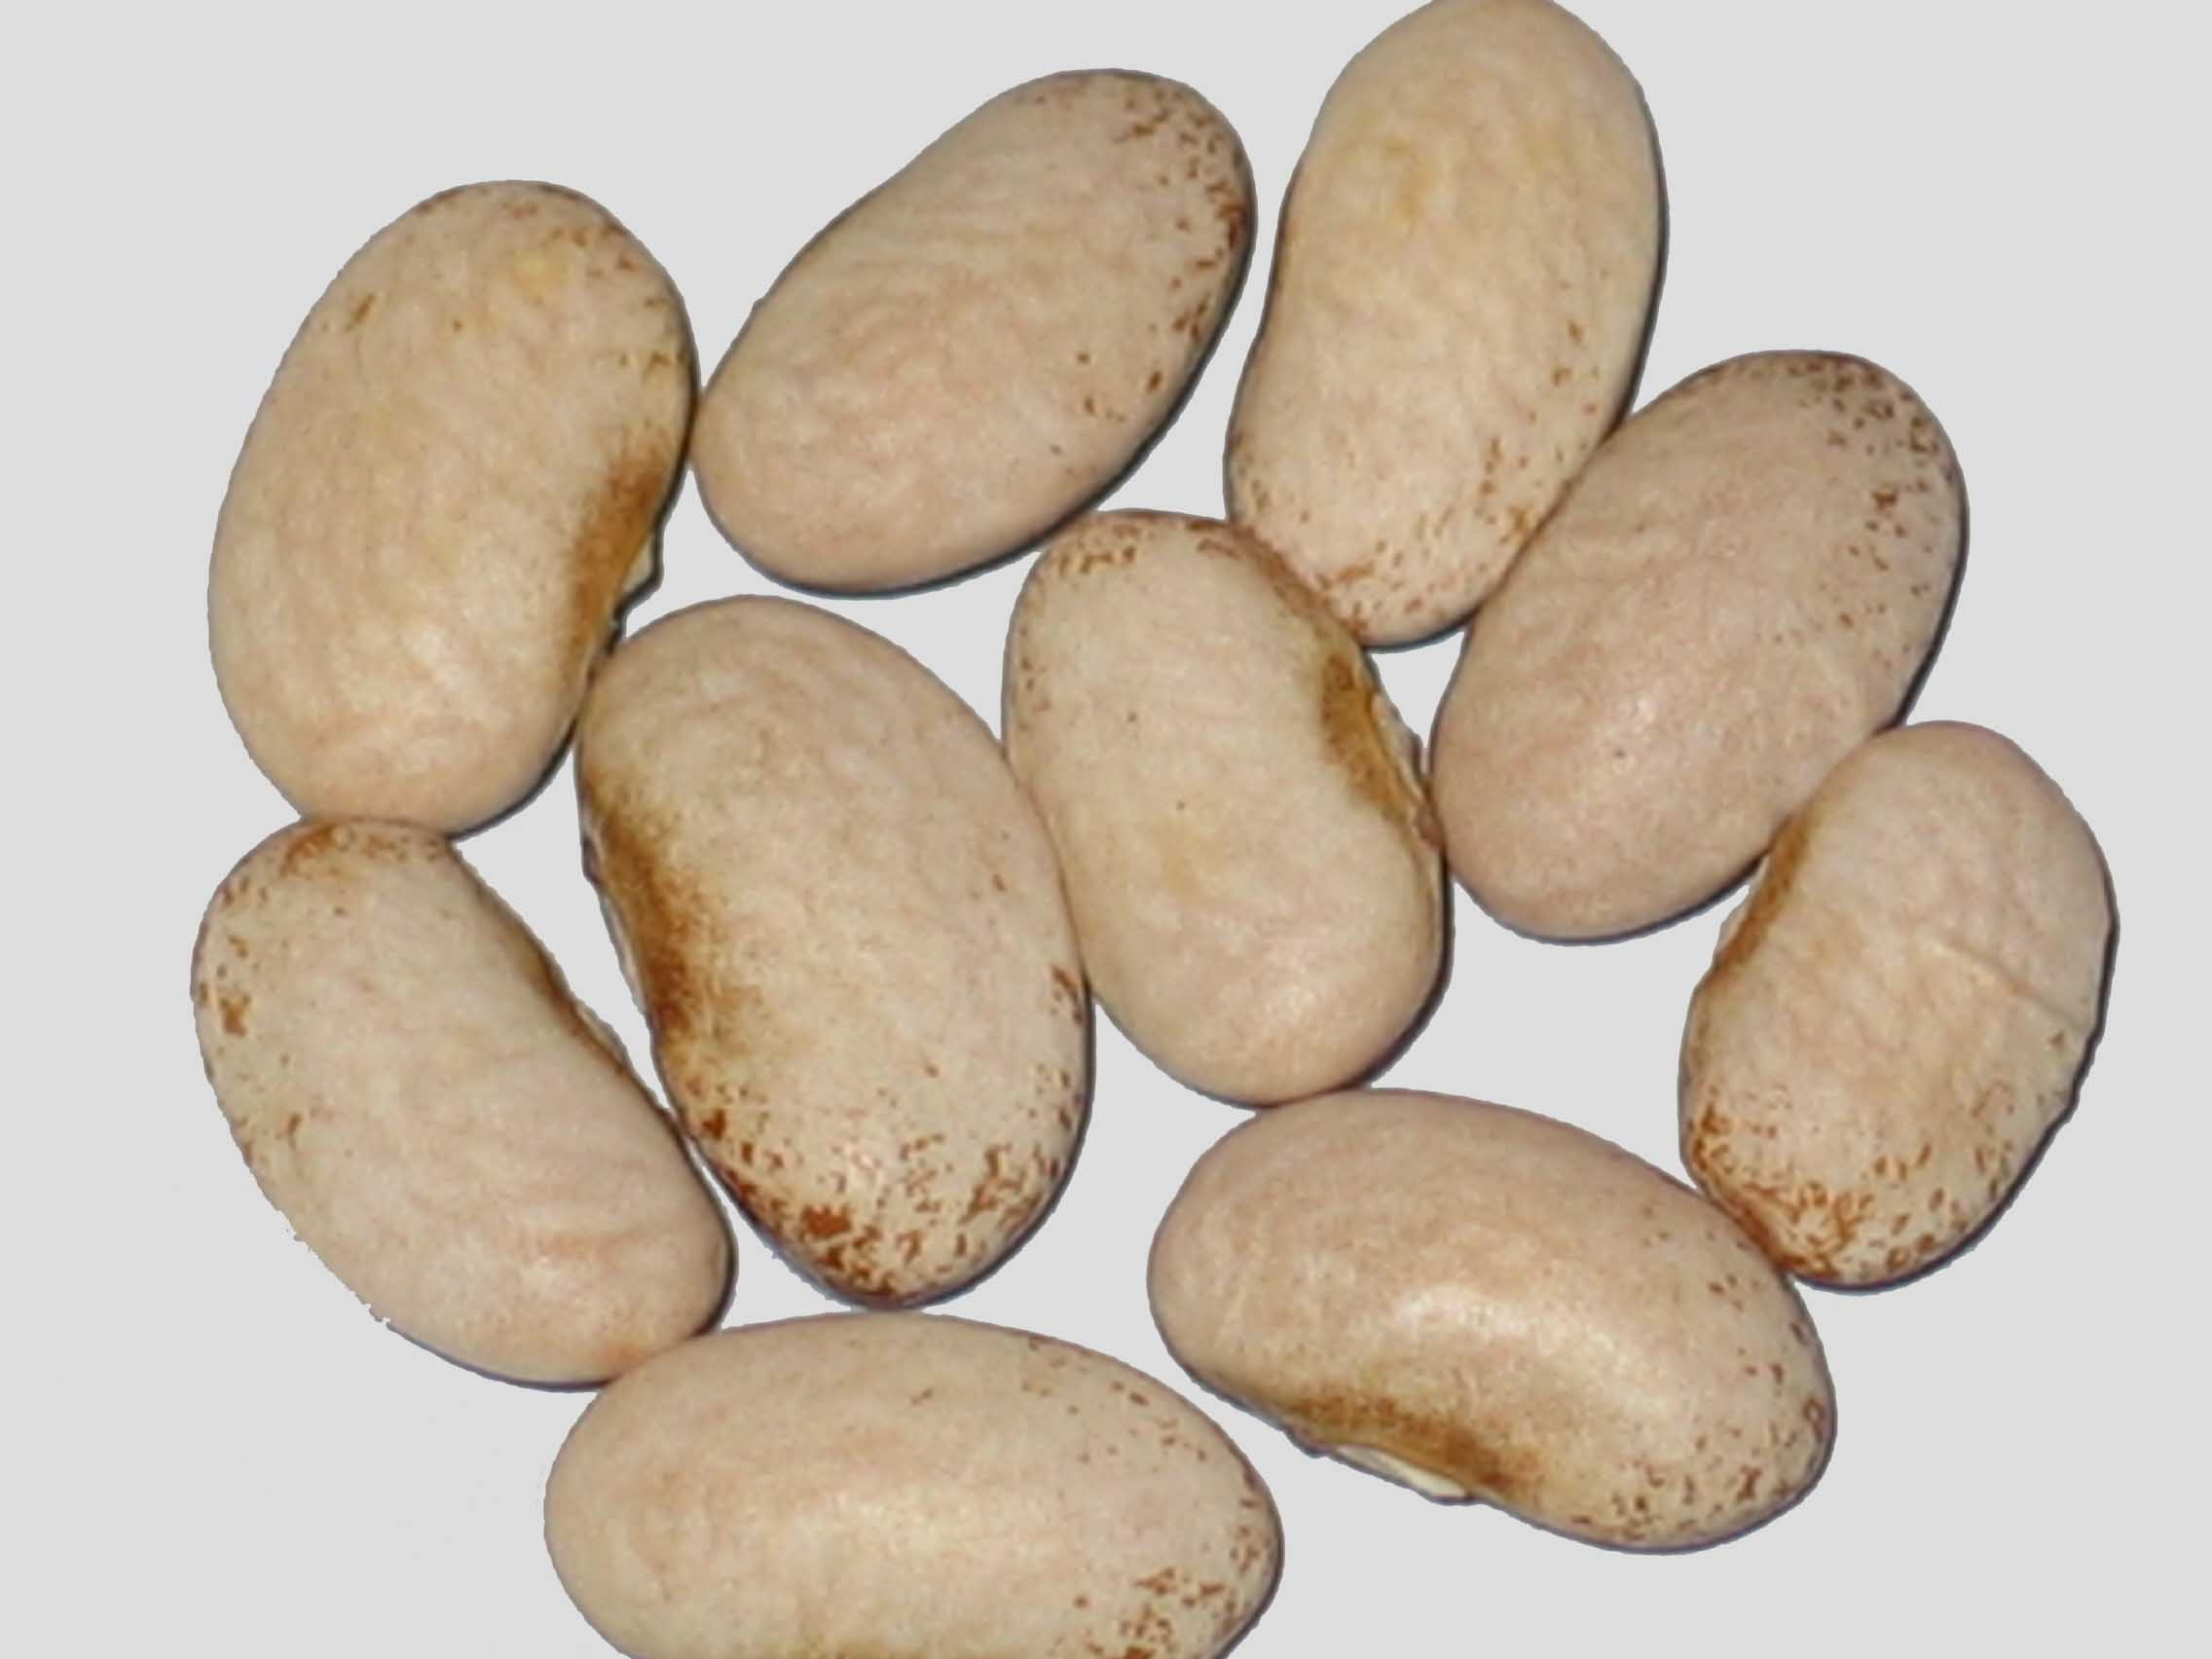 image of Nova Star beans